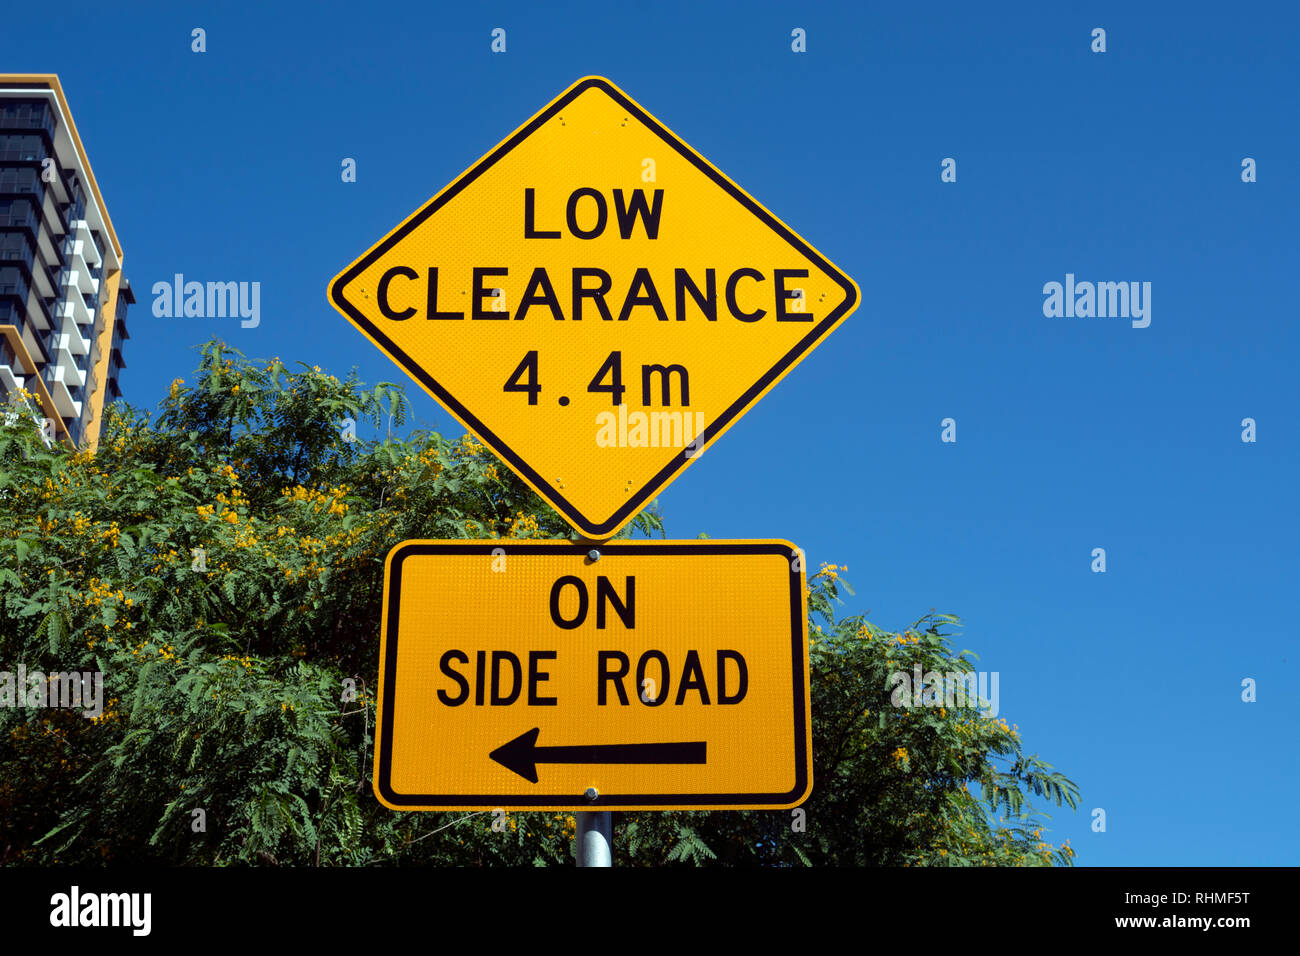 Low Clearance road sign, Brisbane city centre, Queensland, Australia - Stock Image